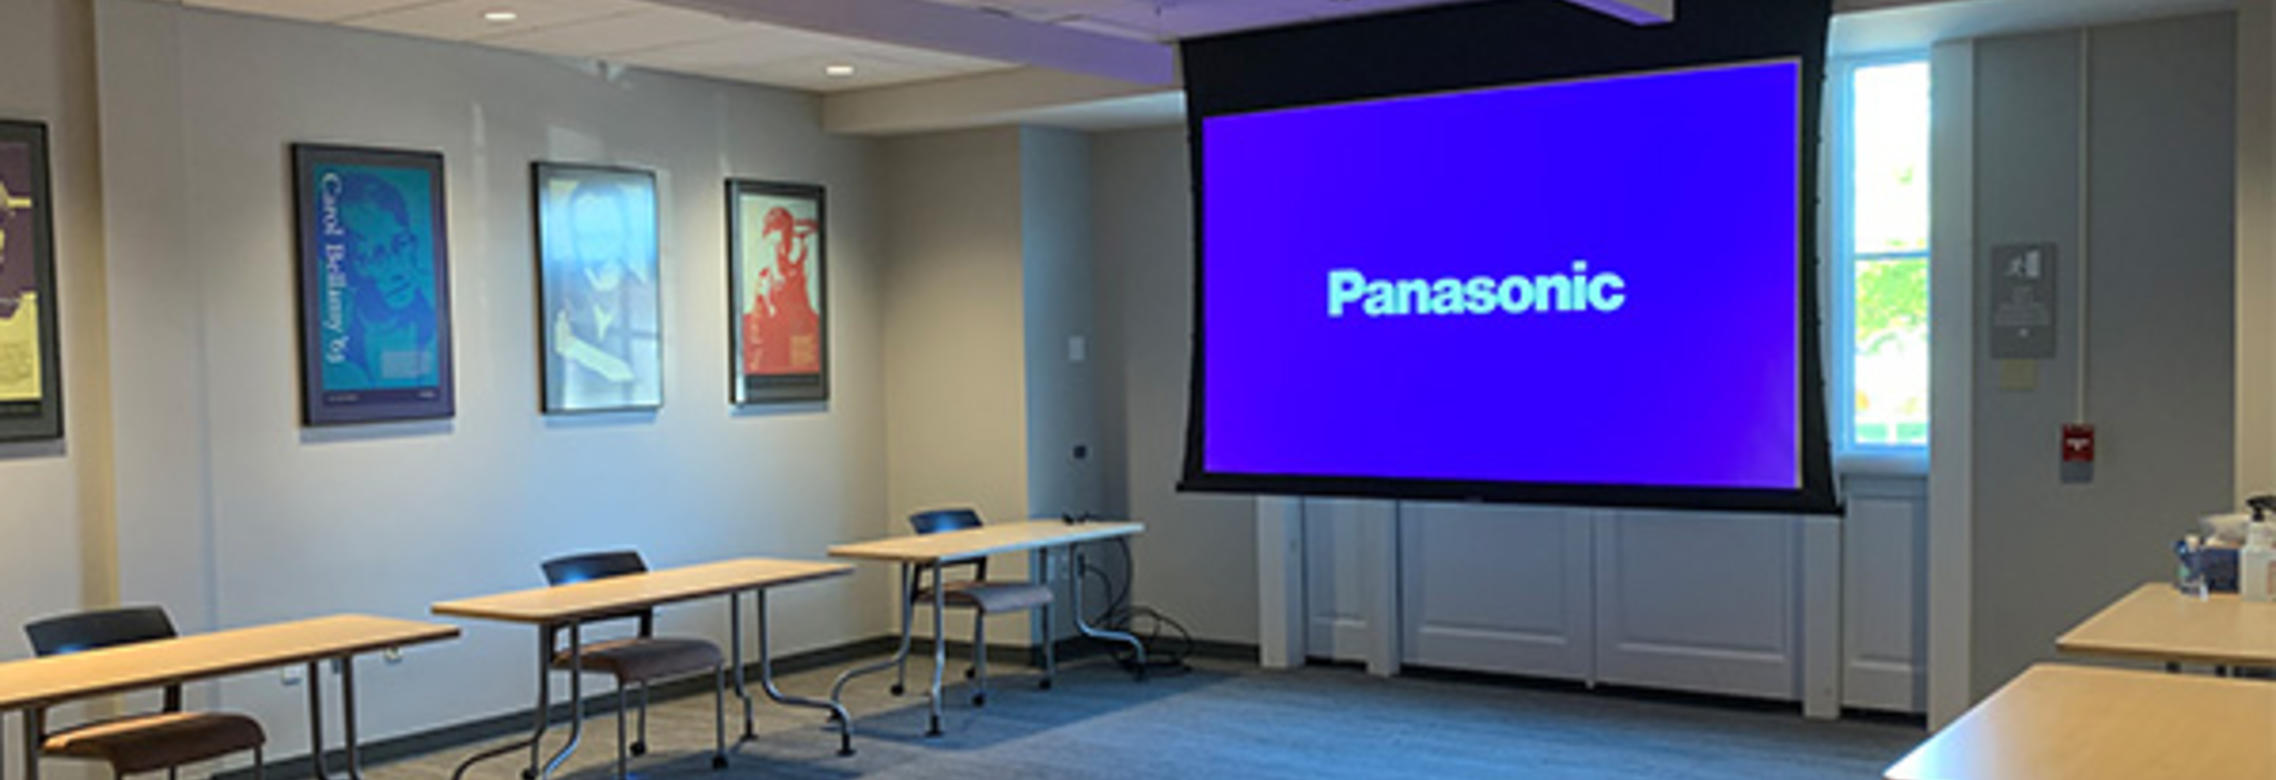 panasonic-projector-pro-display-gettysburg-college-case-study-teaser-image